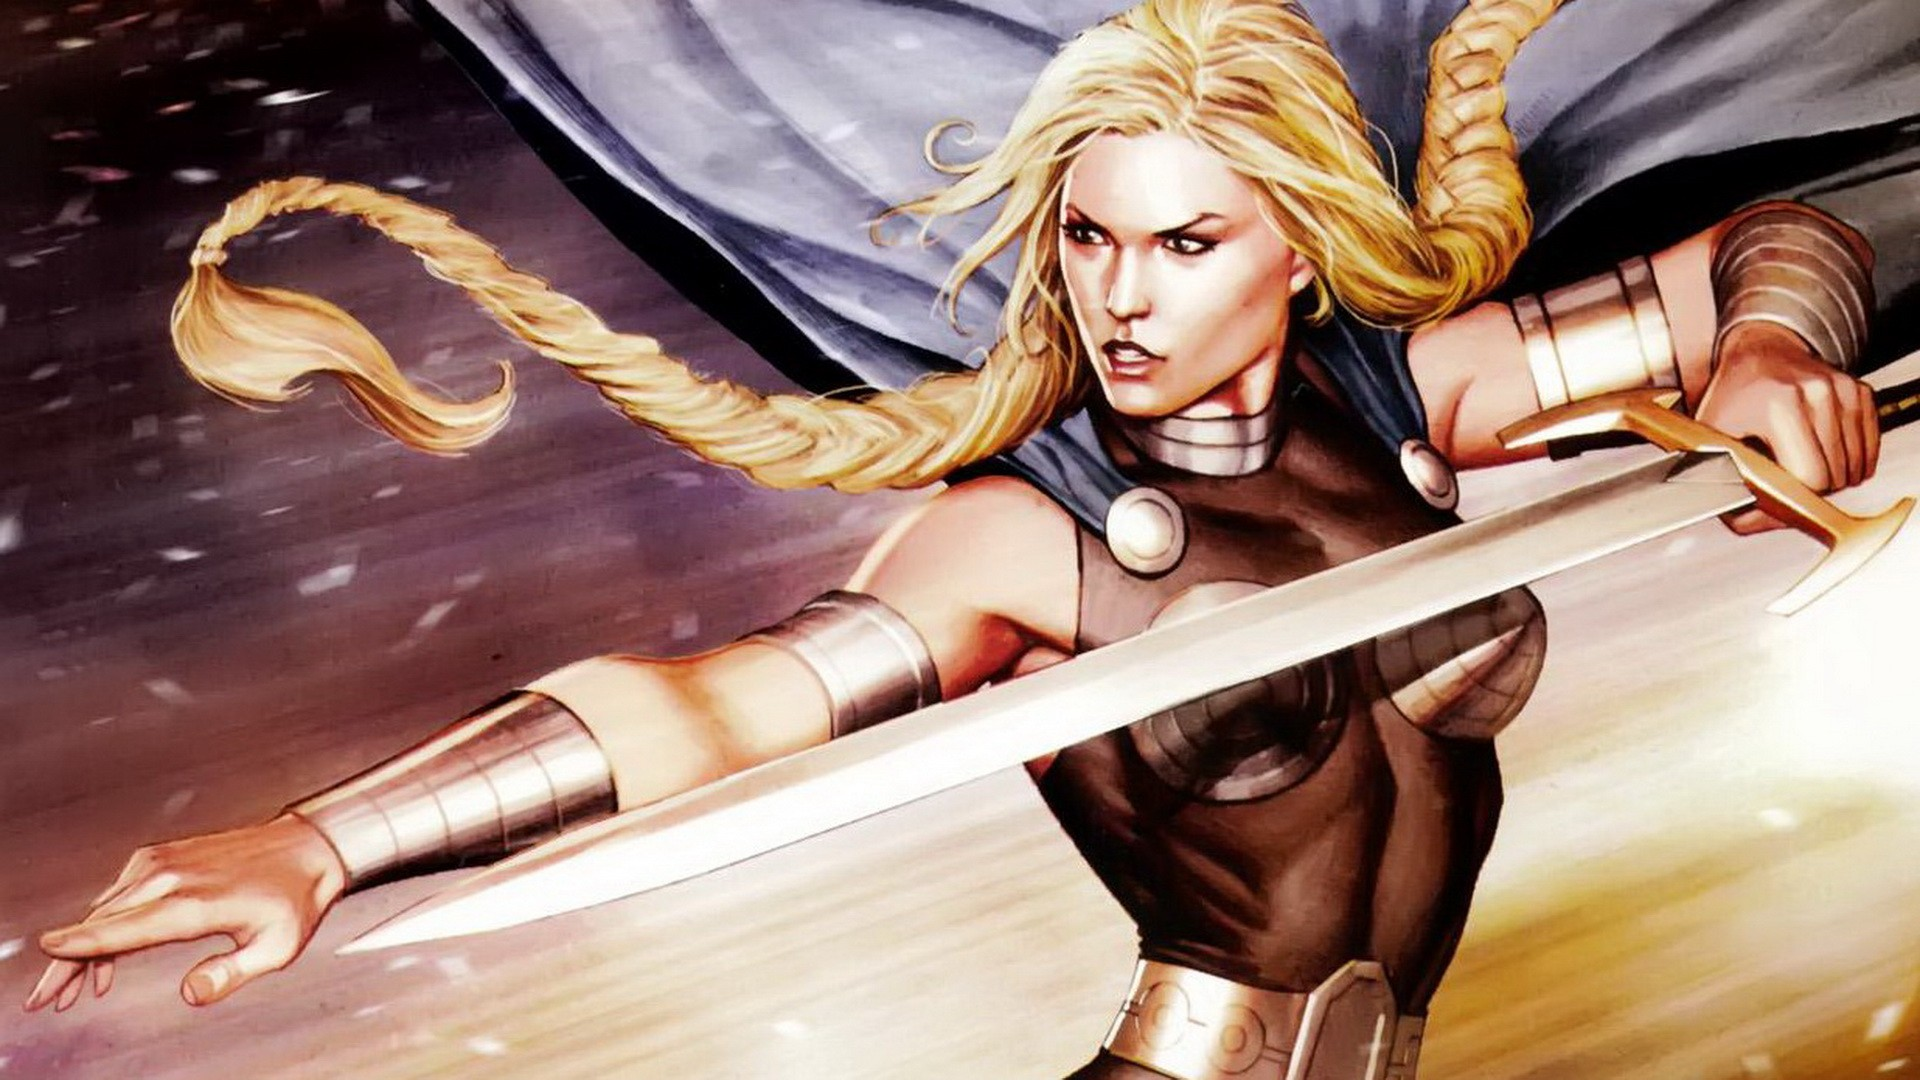 Two Major Female Characters Rumored To Be Added For Thor: Ragnarok